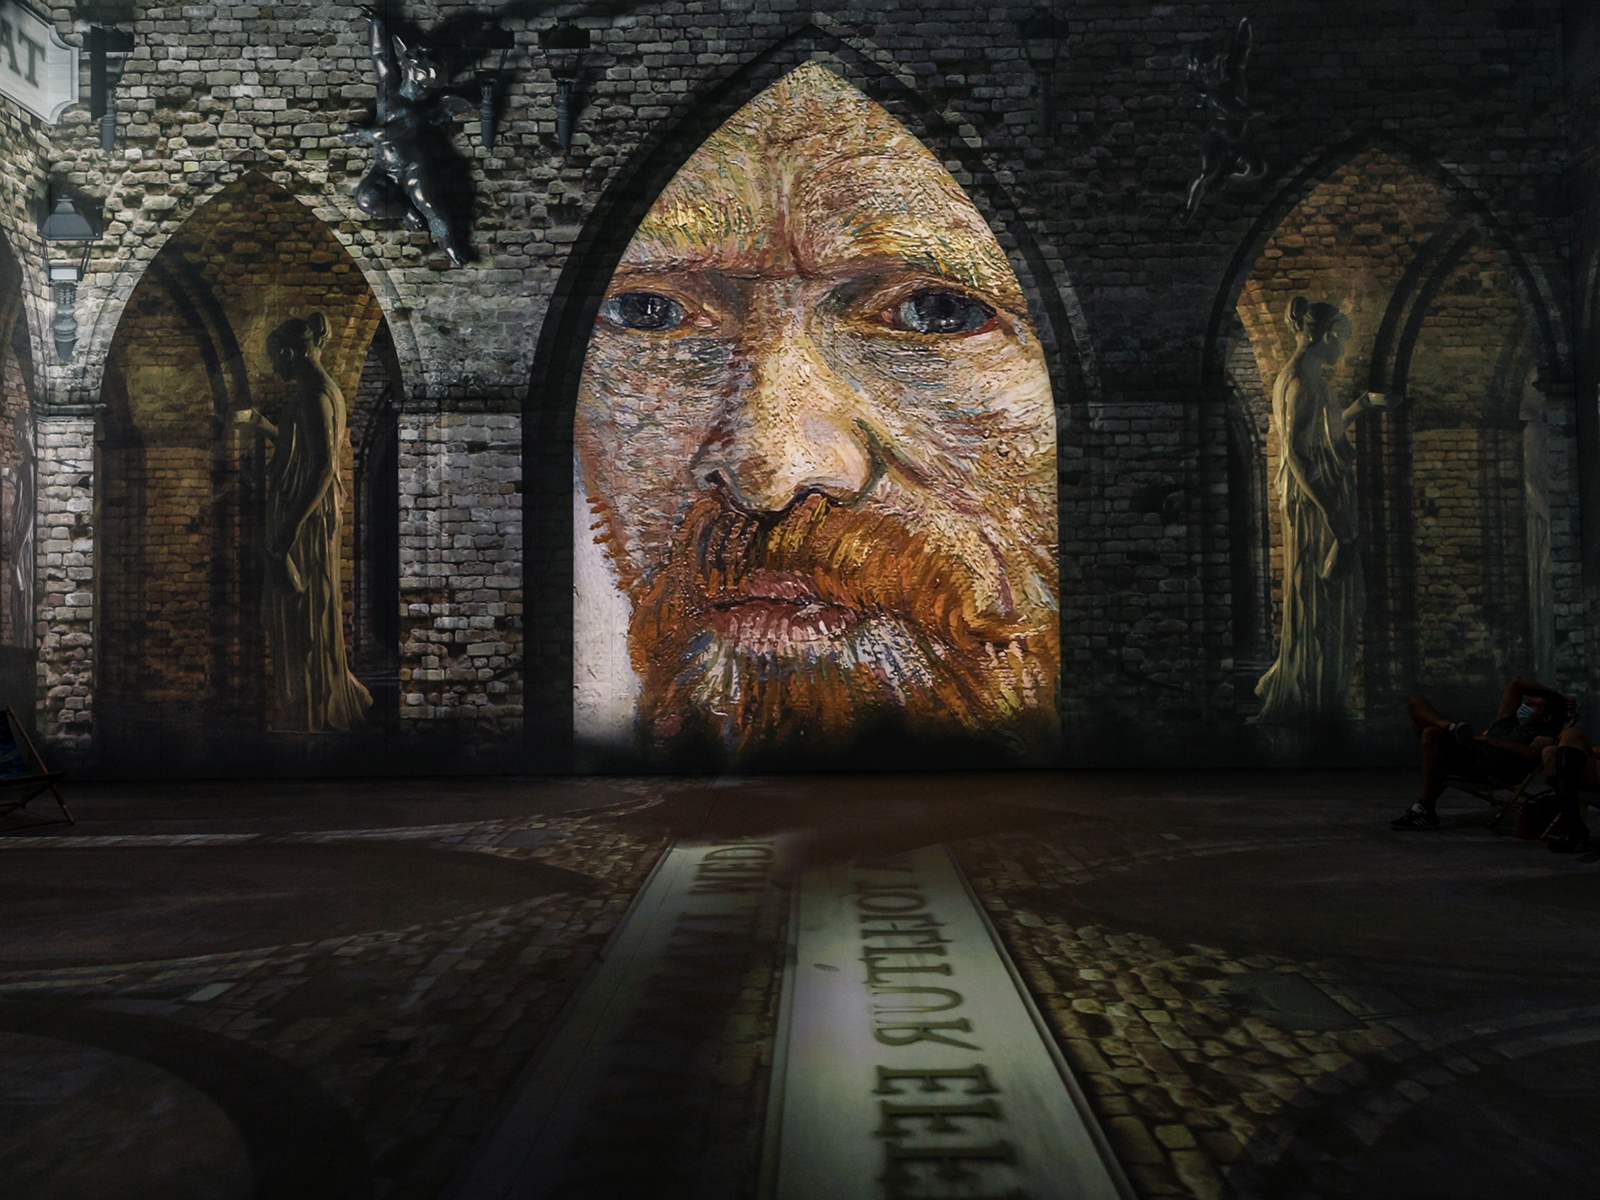 A portrait of Van Gogh projected onto an arched wall